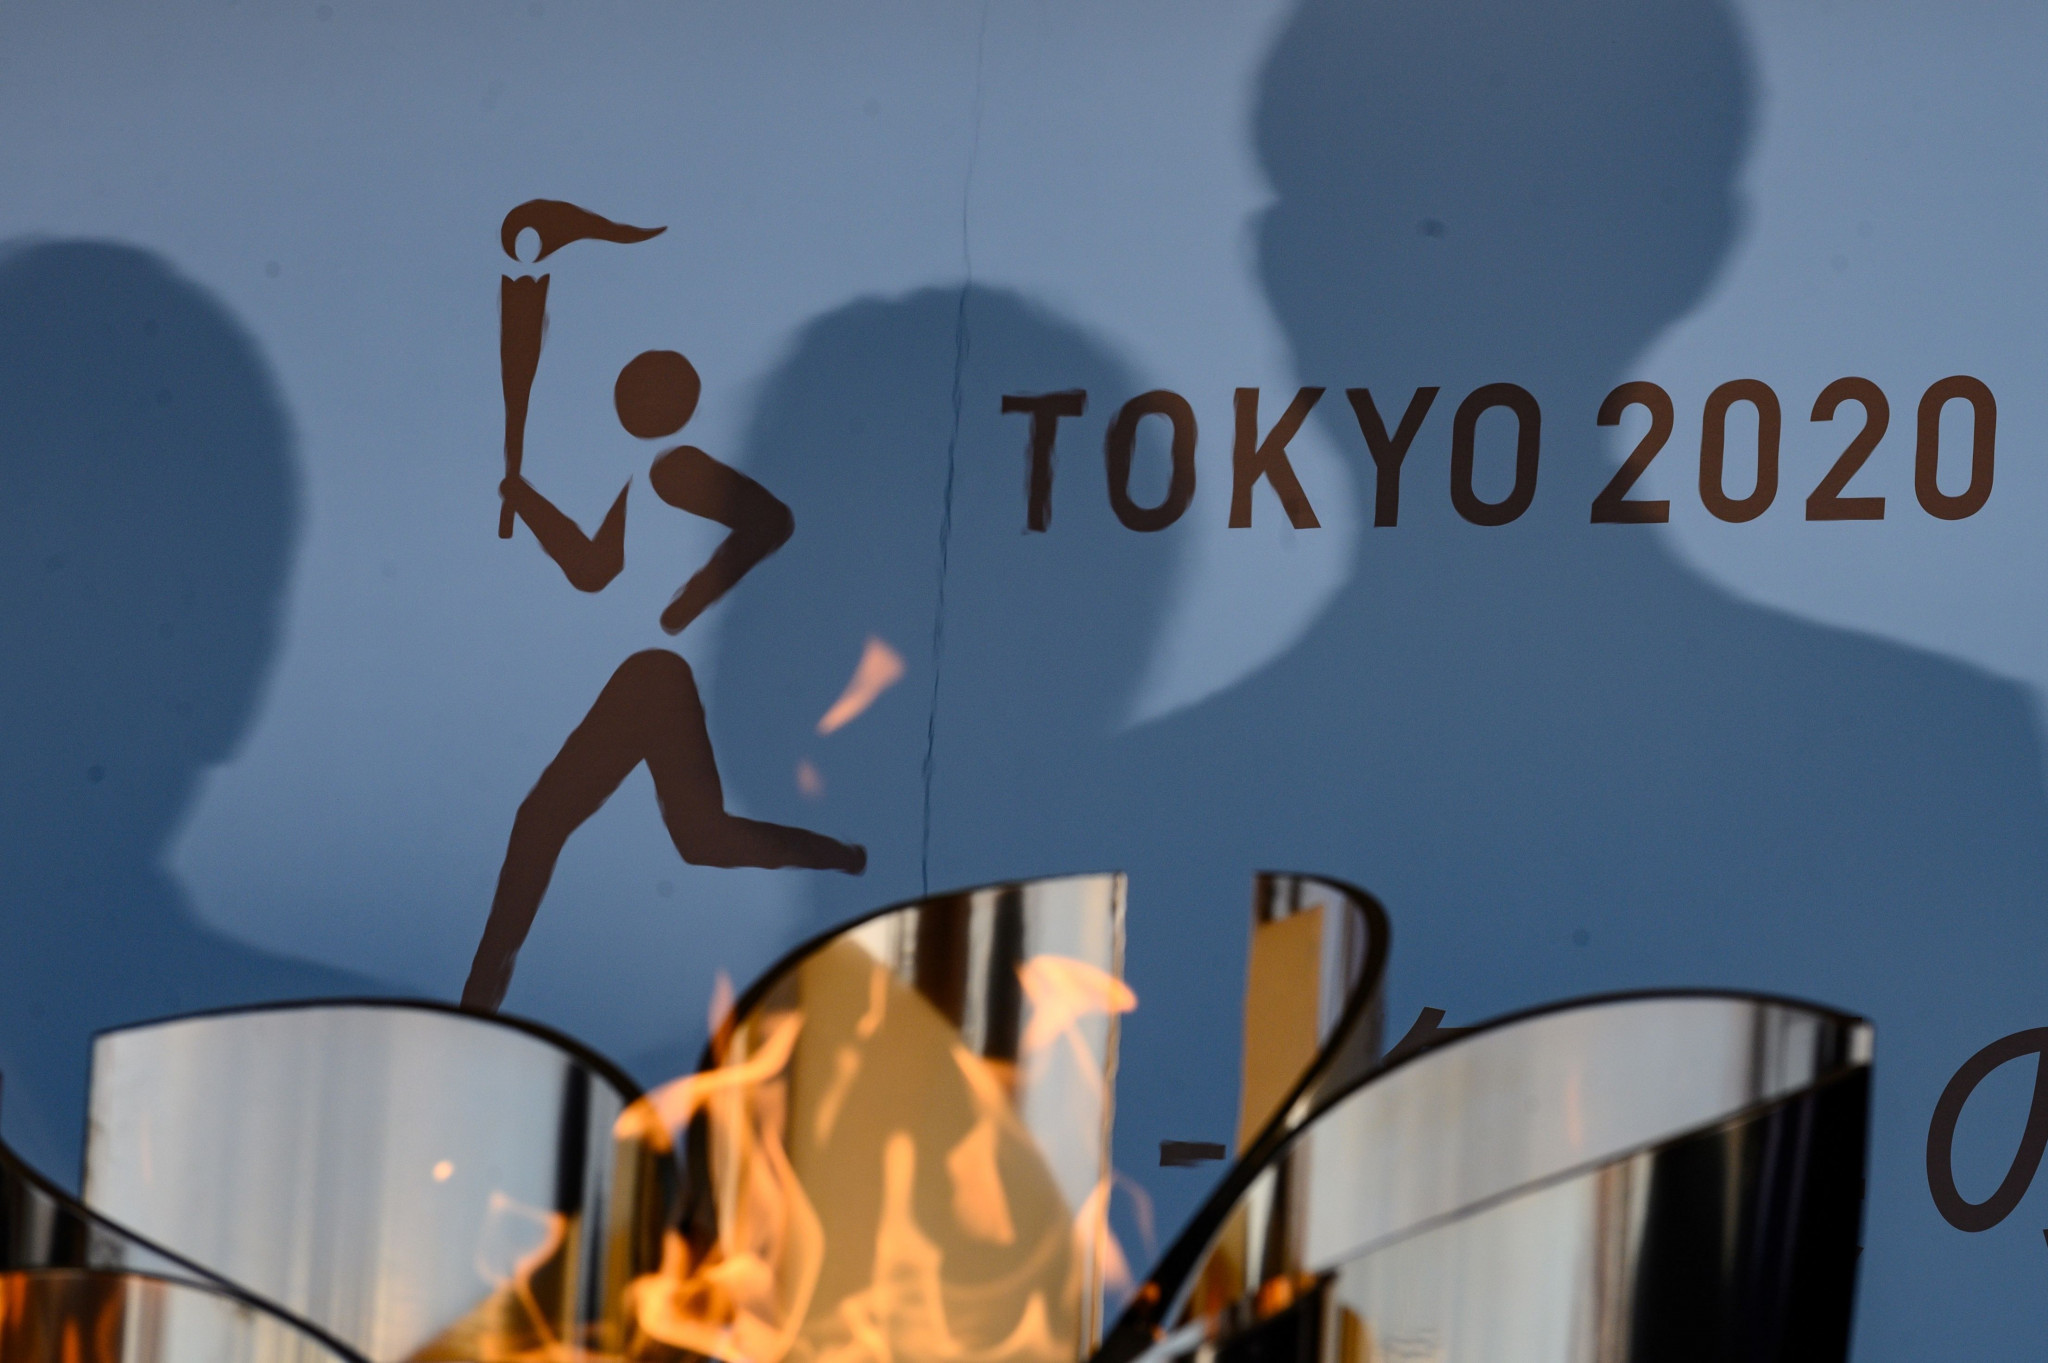 Tokyo 2020 said they will consider how this year's Torchbearers can be given priority in the selection process for the rescheduled Torch Relay ©Getty Images